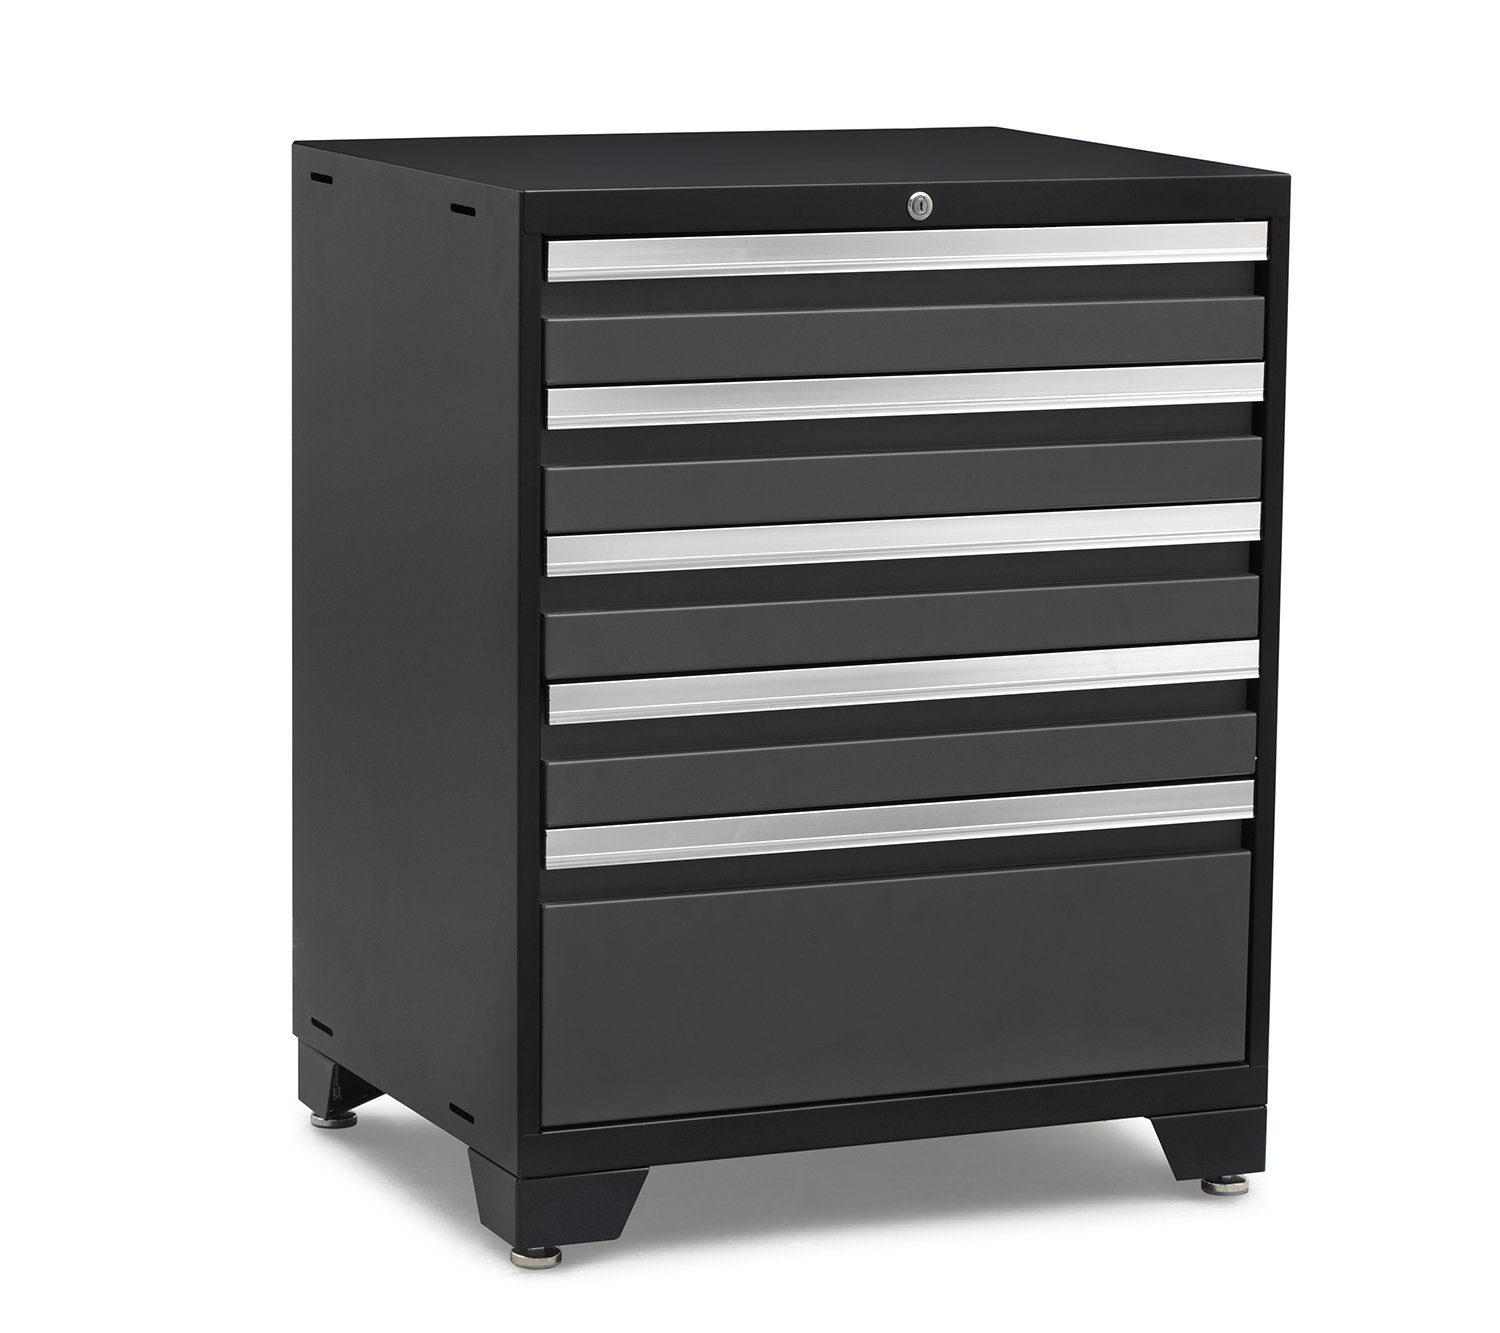 NewAge Products Pro 3 0 Series Tool Cabinet Gray Amazon